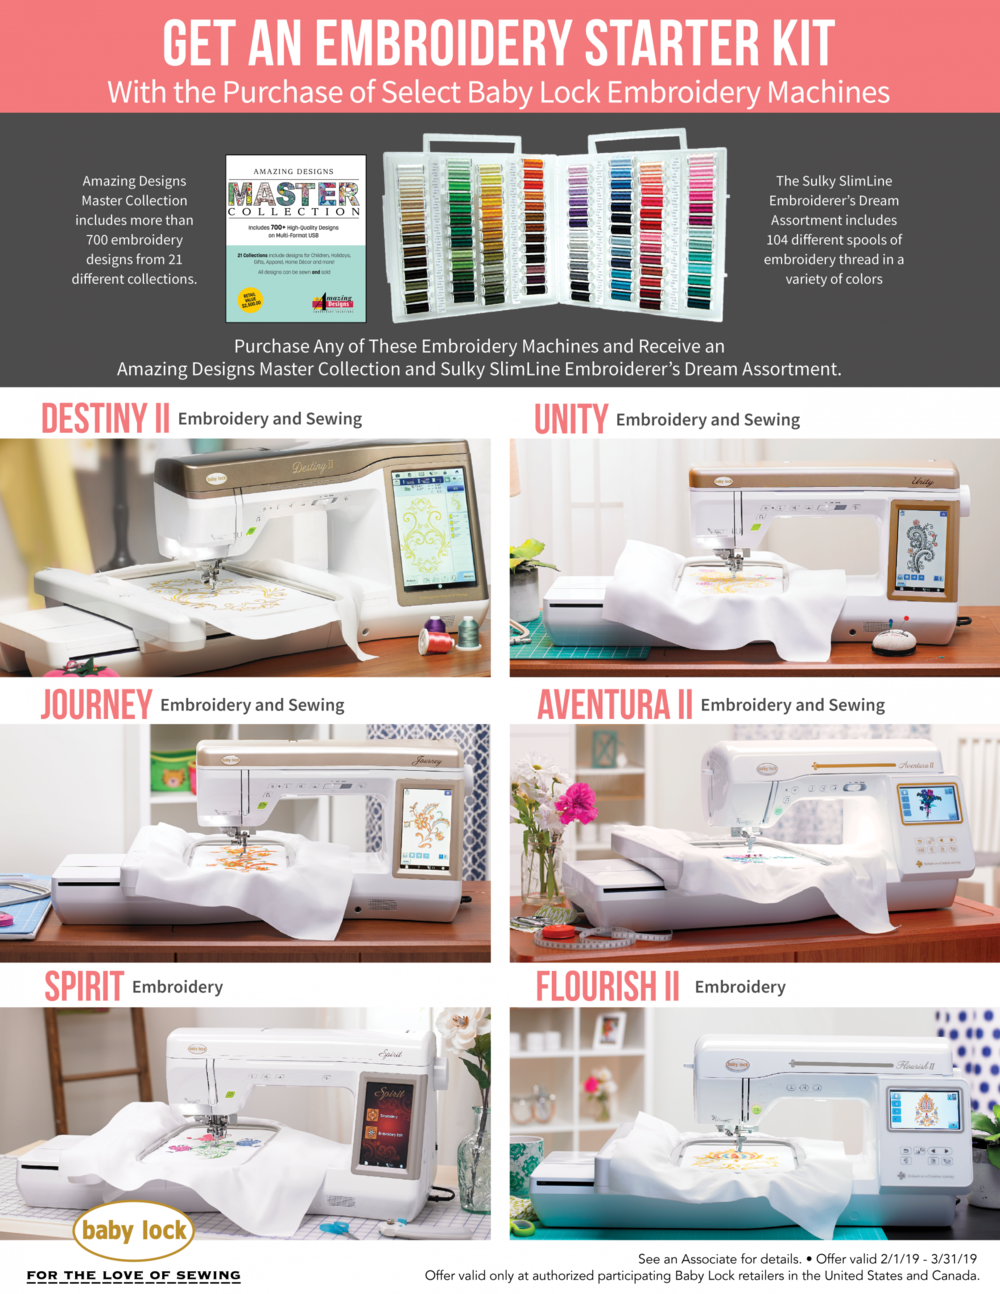 Let's not forget about Embroidery! With the purchase of select Baby Lock embroidery machines, you will receive a Kit including 700 embroidery designs and 104 spools of embroidery thread for FREE. This bundle is worth more than $2,800! -